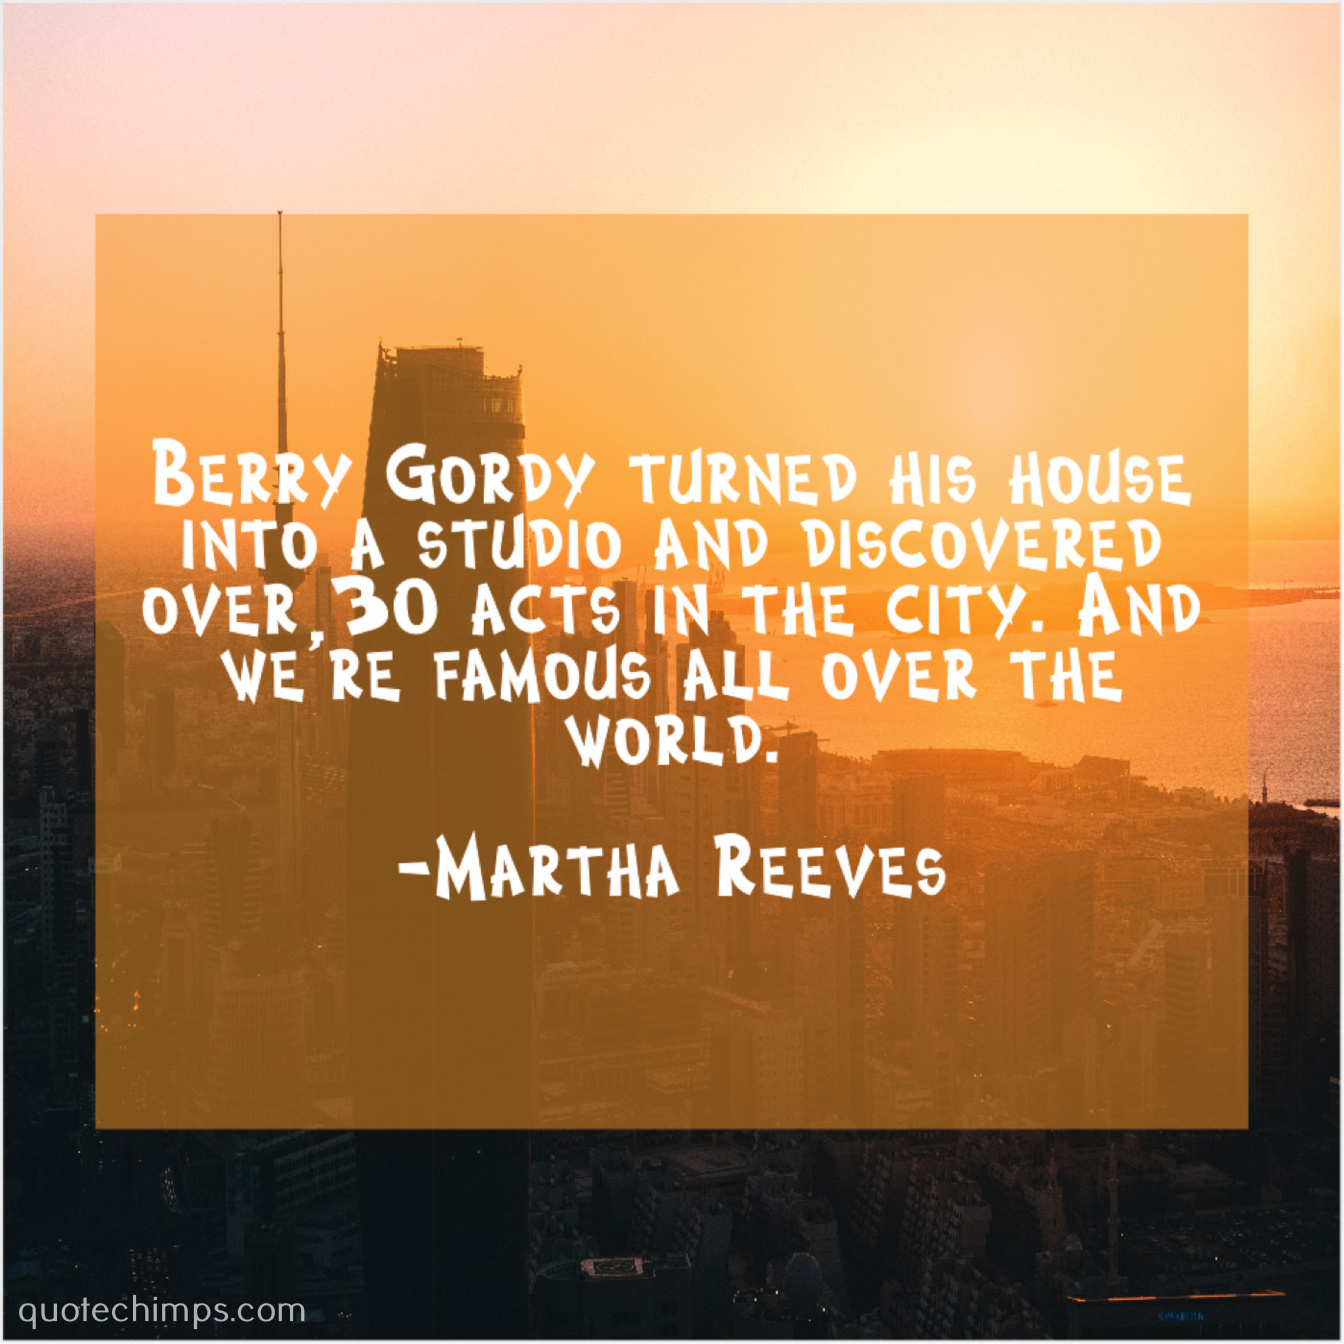 Martha Reeves Quote Chimps